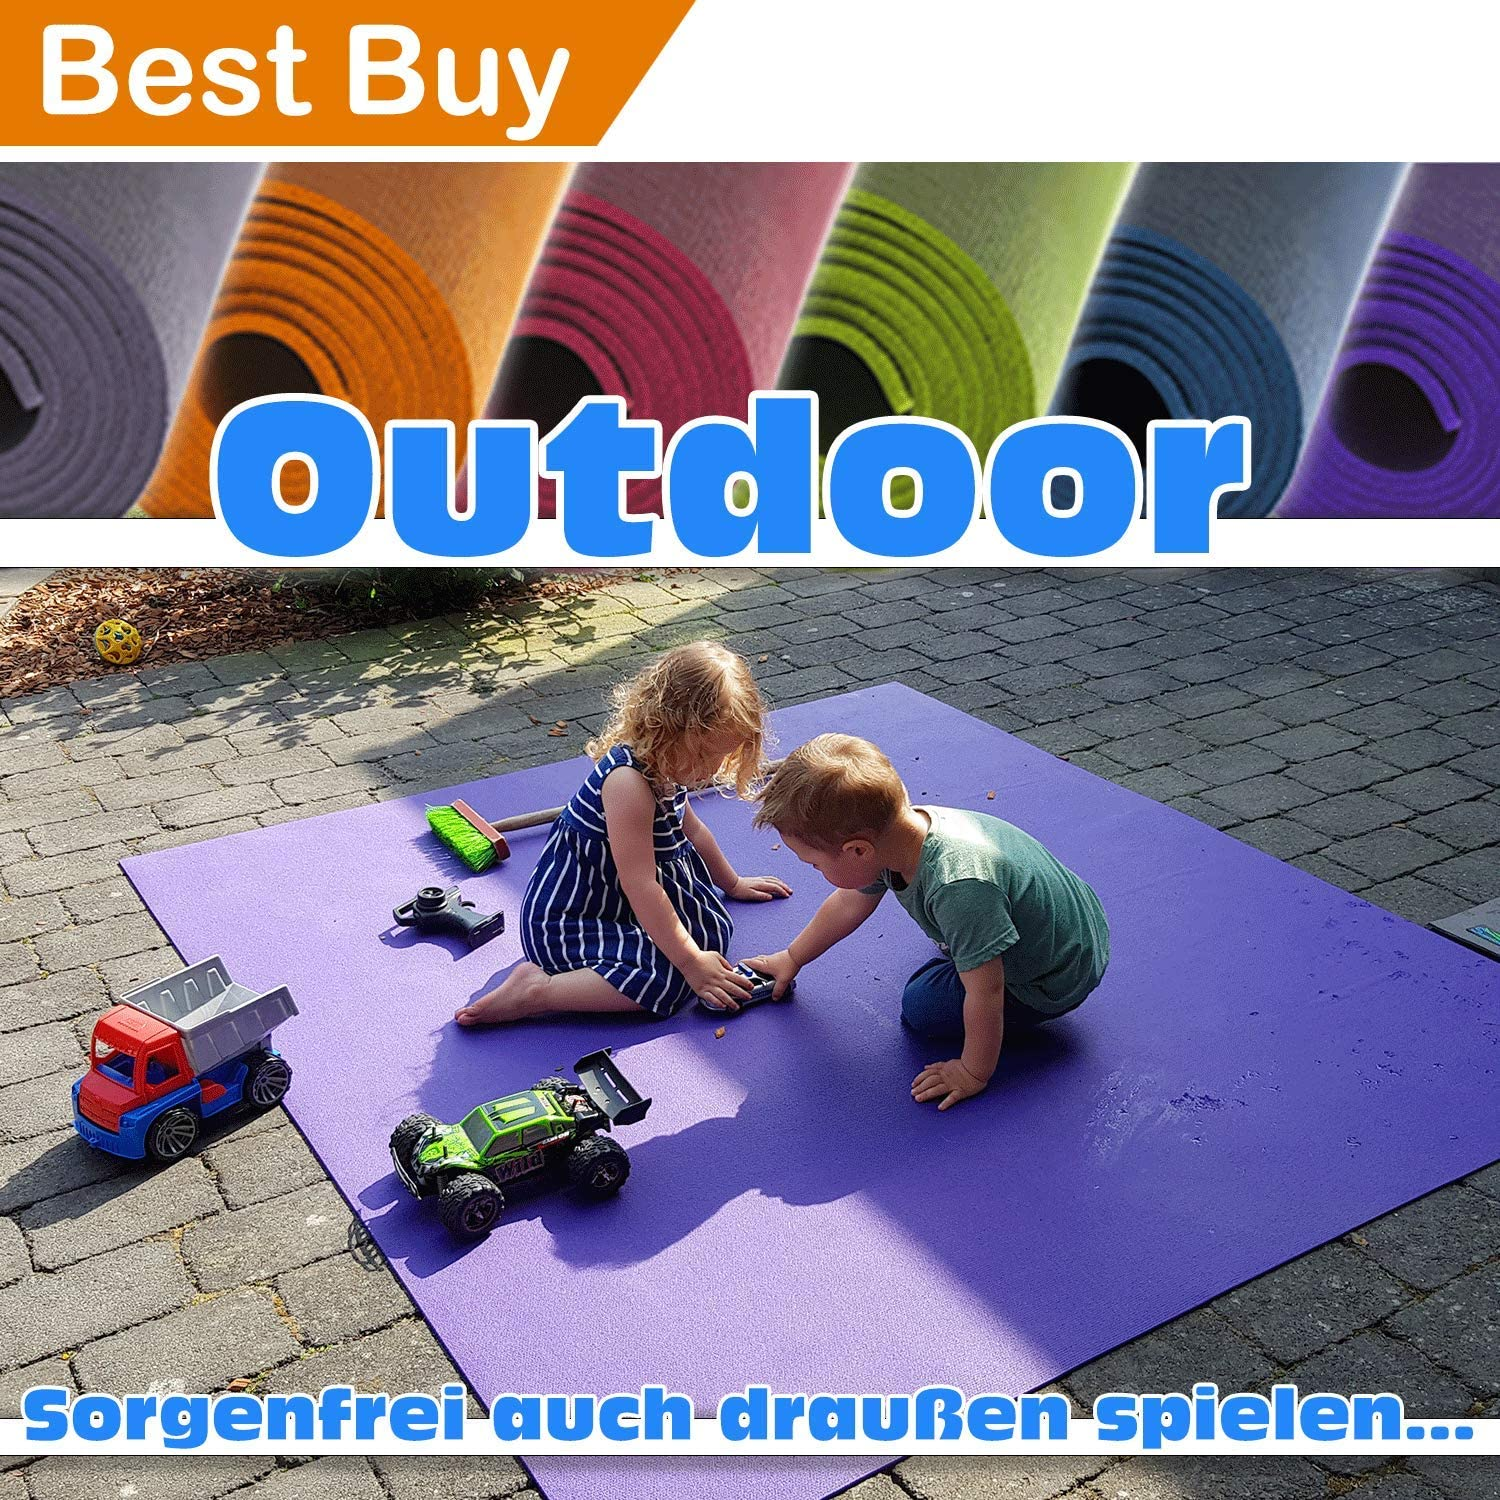 SanoSoft outdoor crawling mat, made in Germany